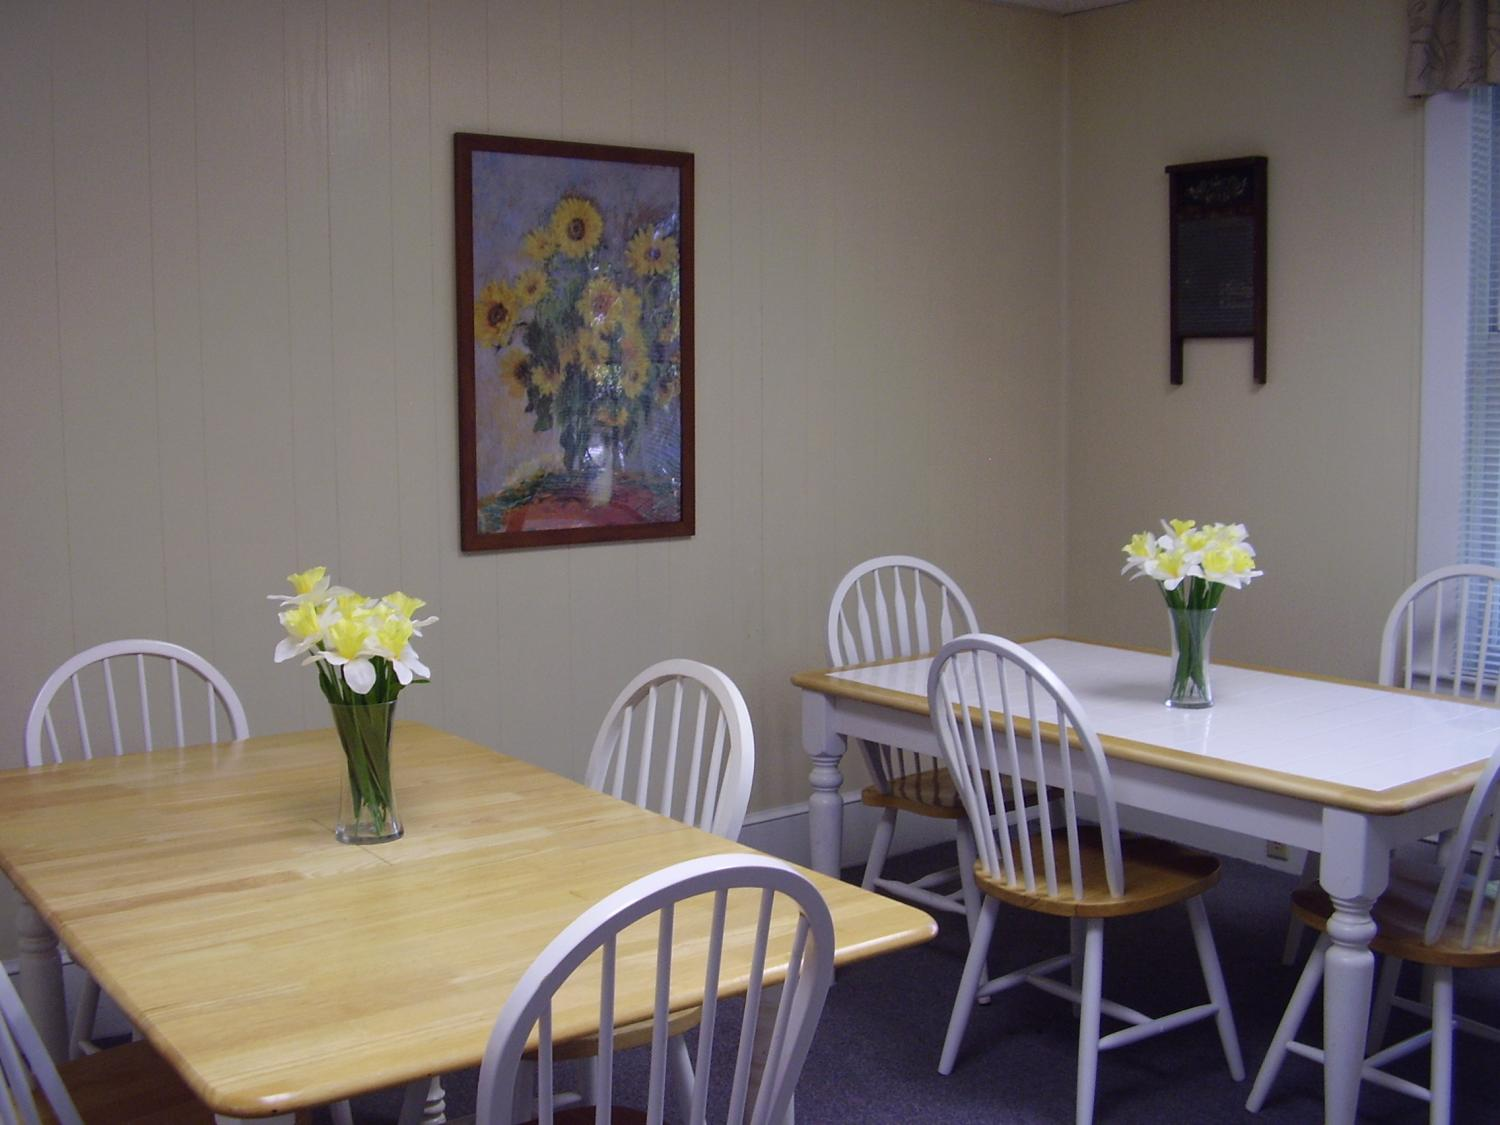 Members meet each morning for Round Robin and enjoy meals and BINGO in our dining area.